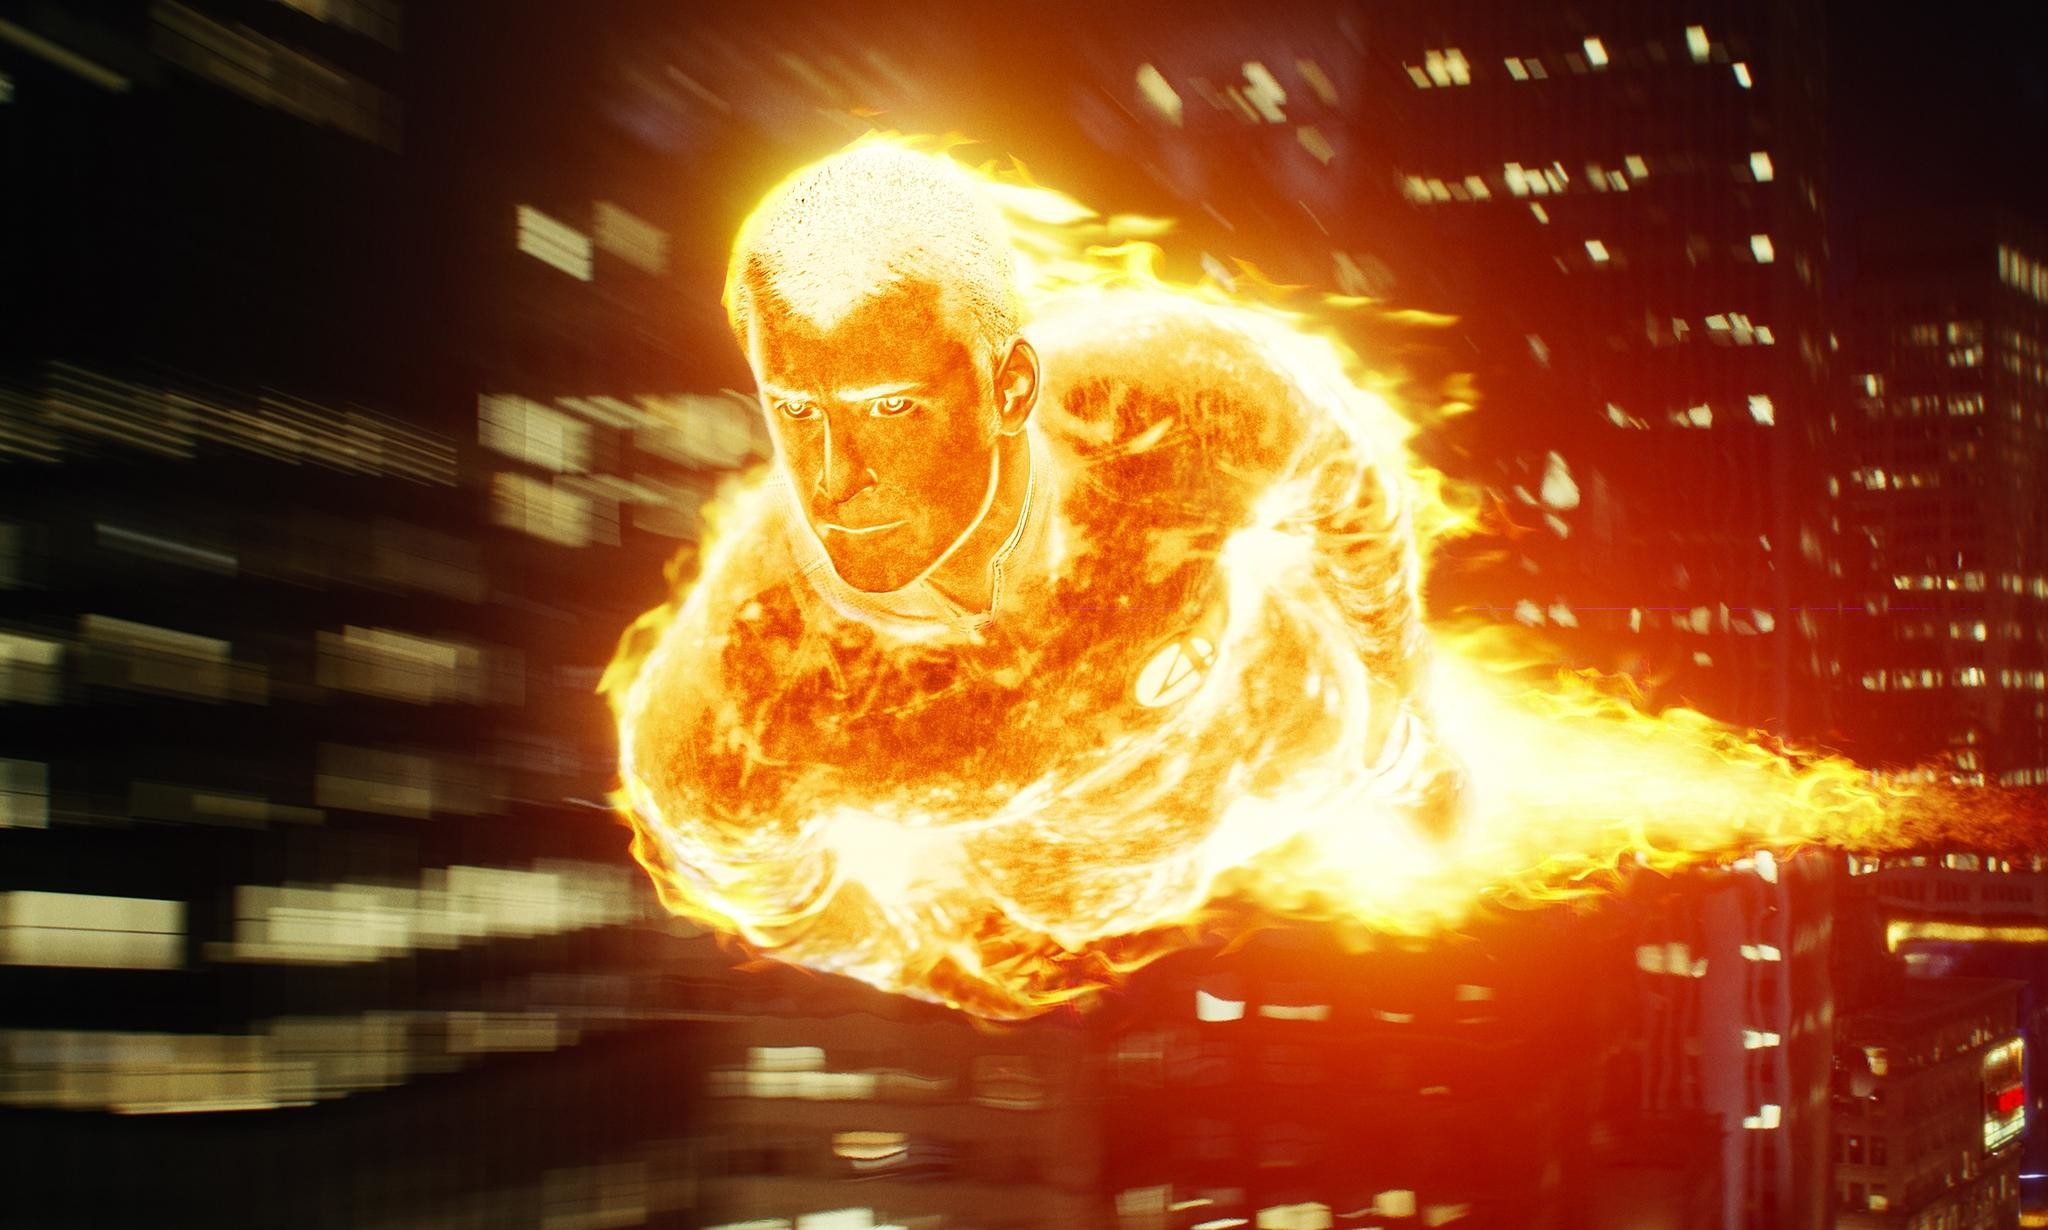 Res: 2048x1230, human torch